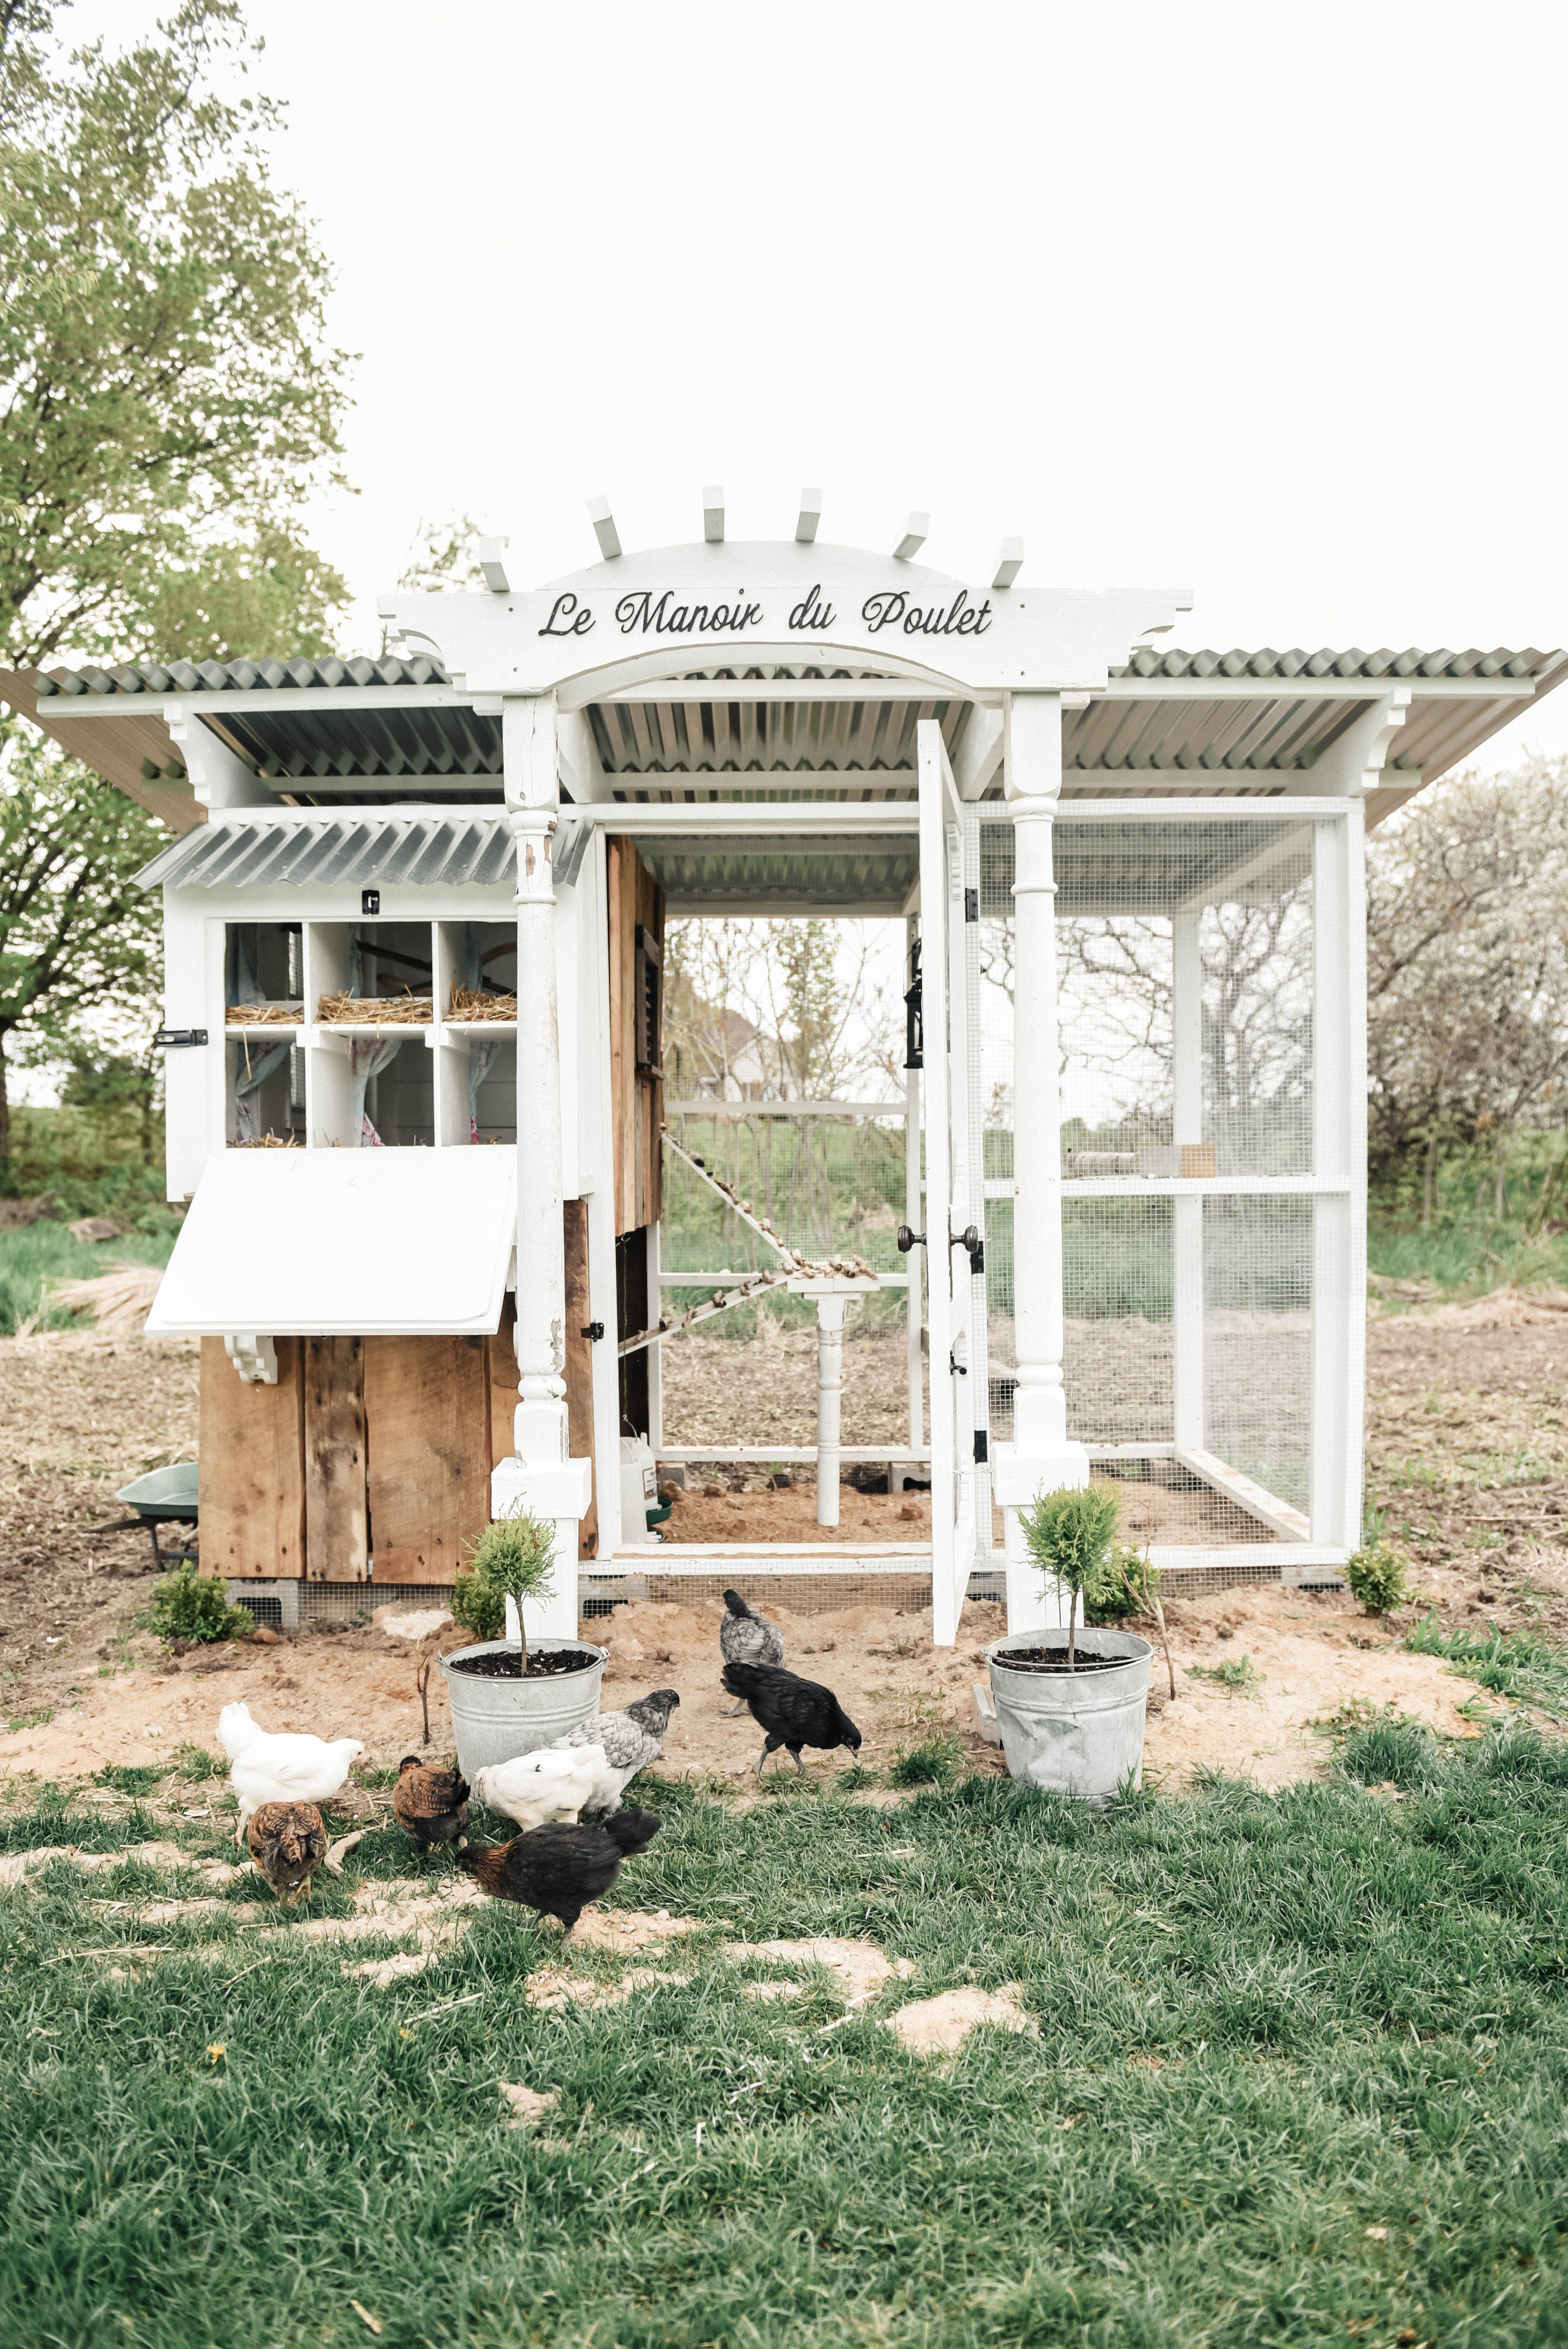 diy farmhouse style chicken coop liz marie blog - Chicken Co Op Plans And Greenhouse